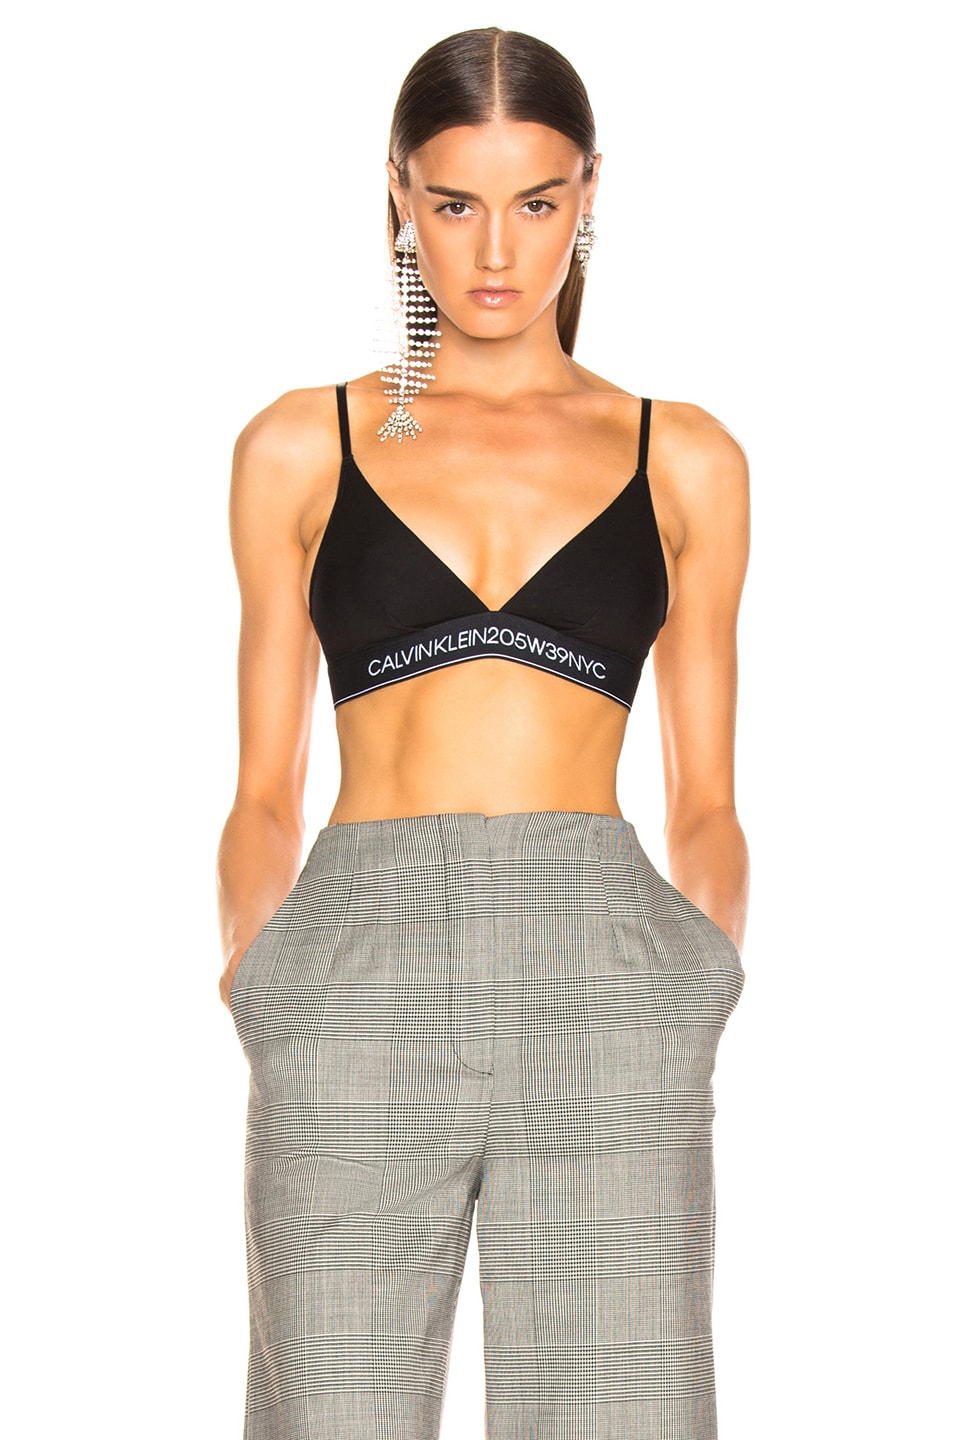 Image 1 of CALVIN KLEIN 205W39NYC Unlined Triangle Bra in Black